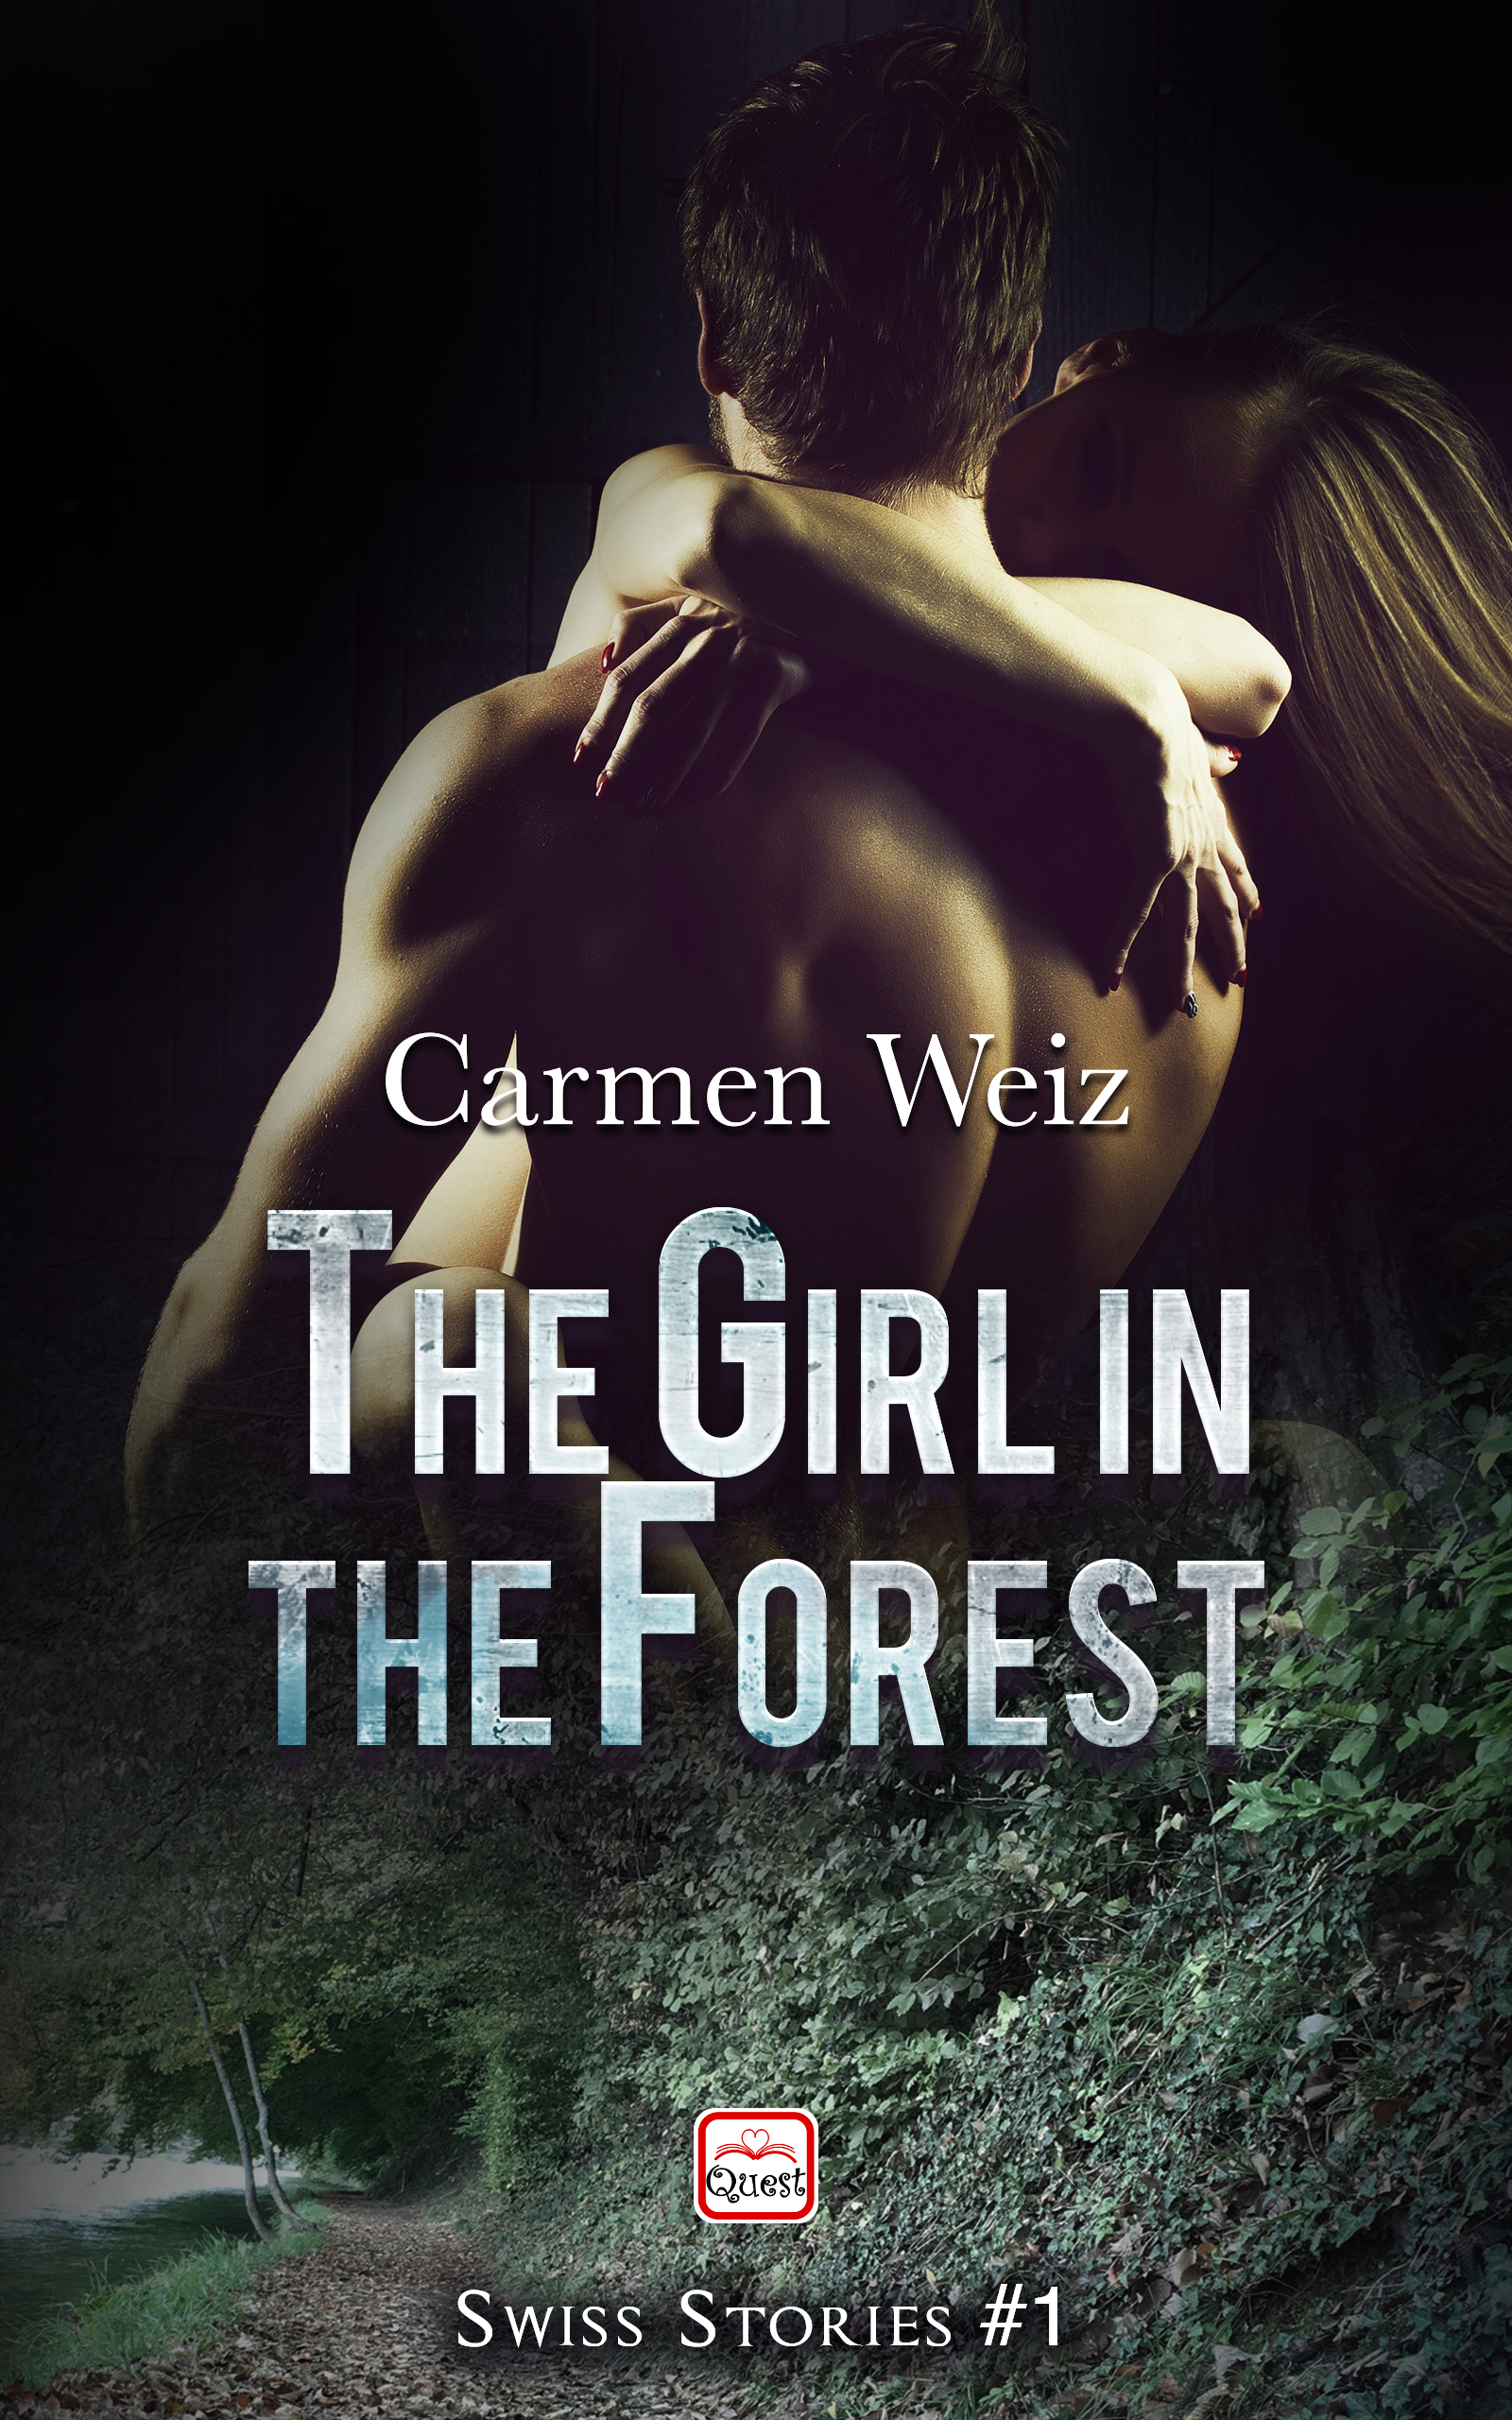 The-girl-in-the-forest_cover_ebook